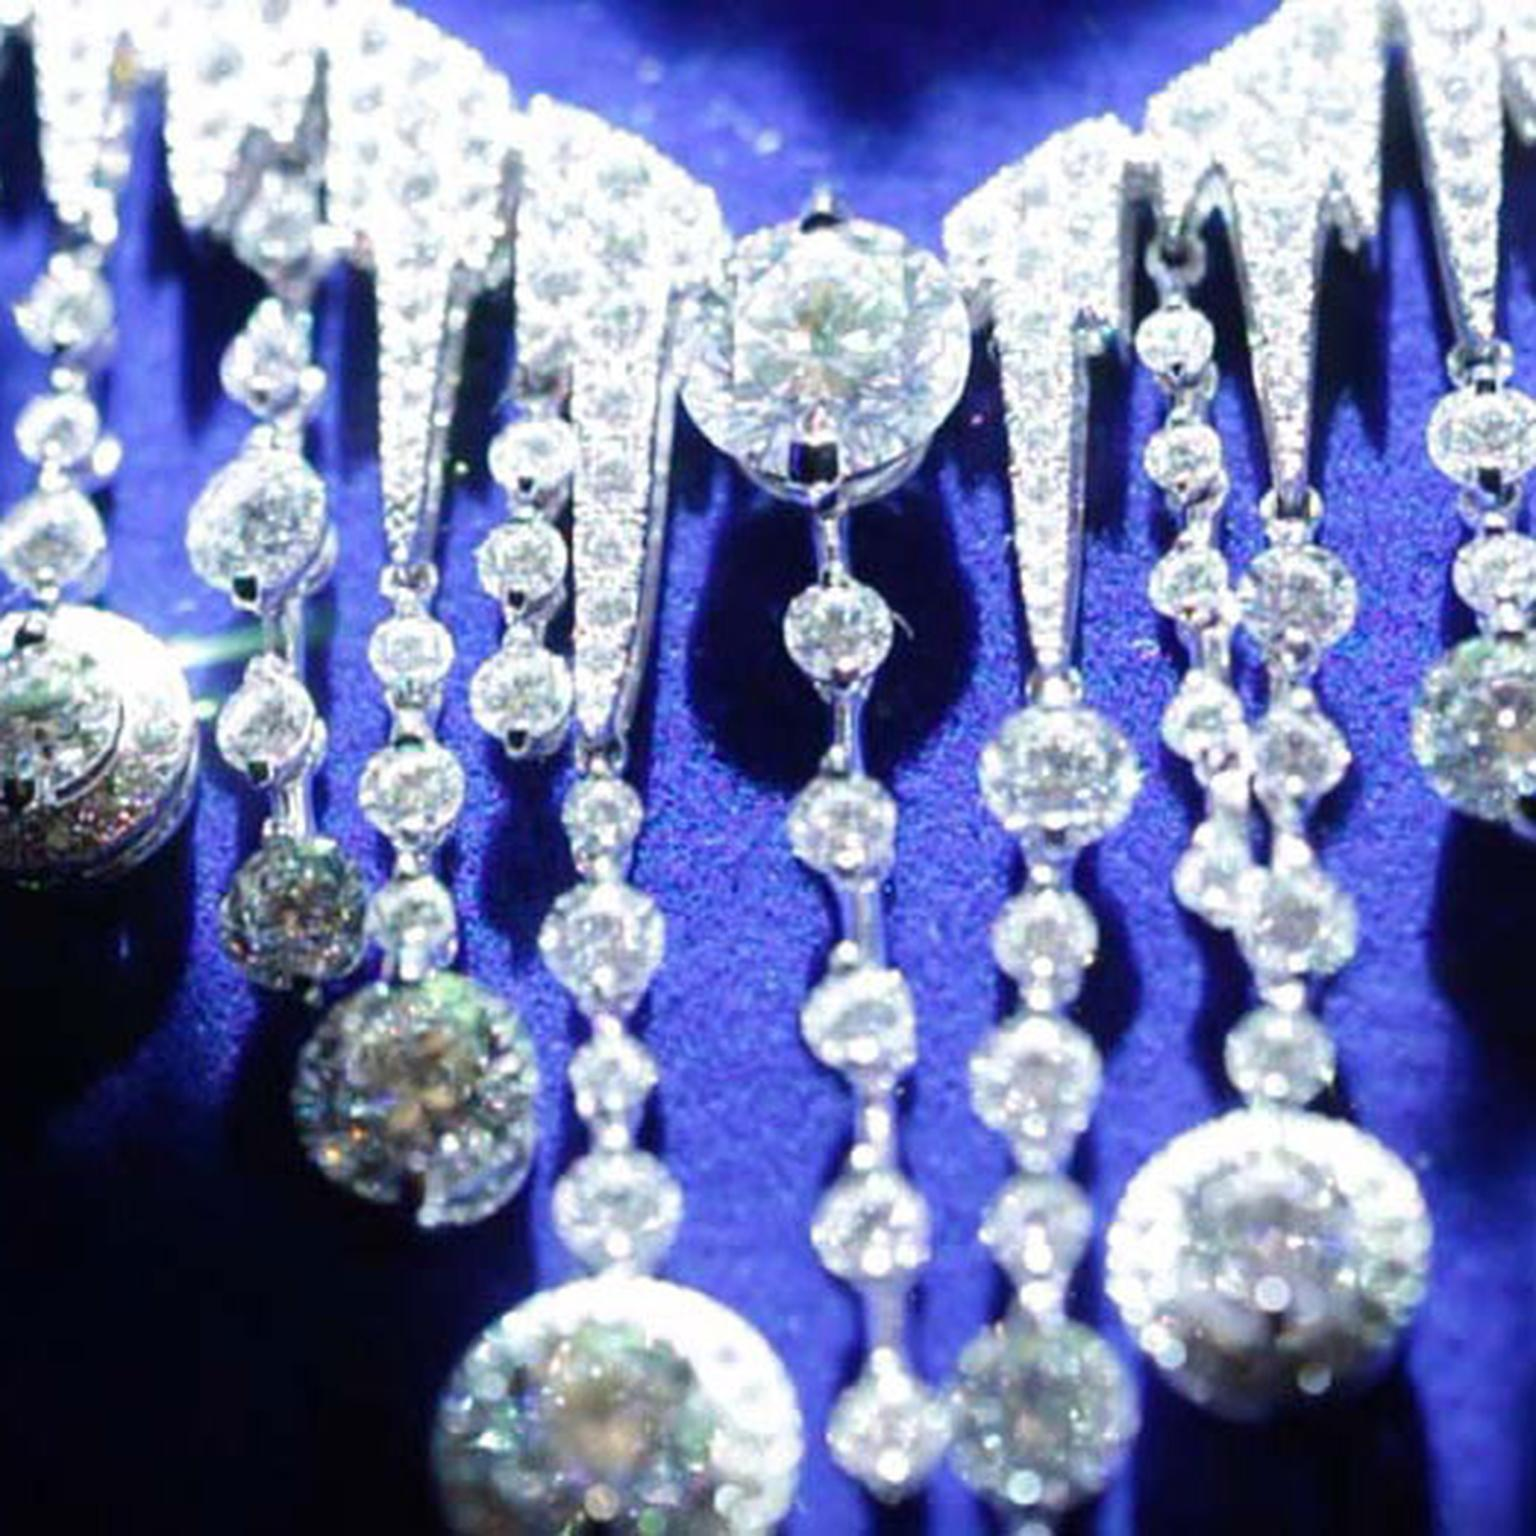 Chaumet Frozen diamond necklace from the new Lumières d'Eau high jewellery collection.